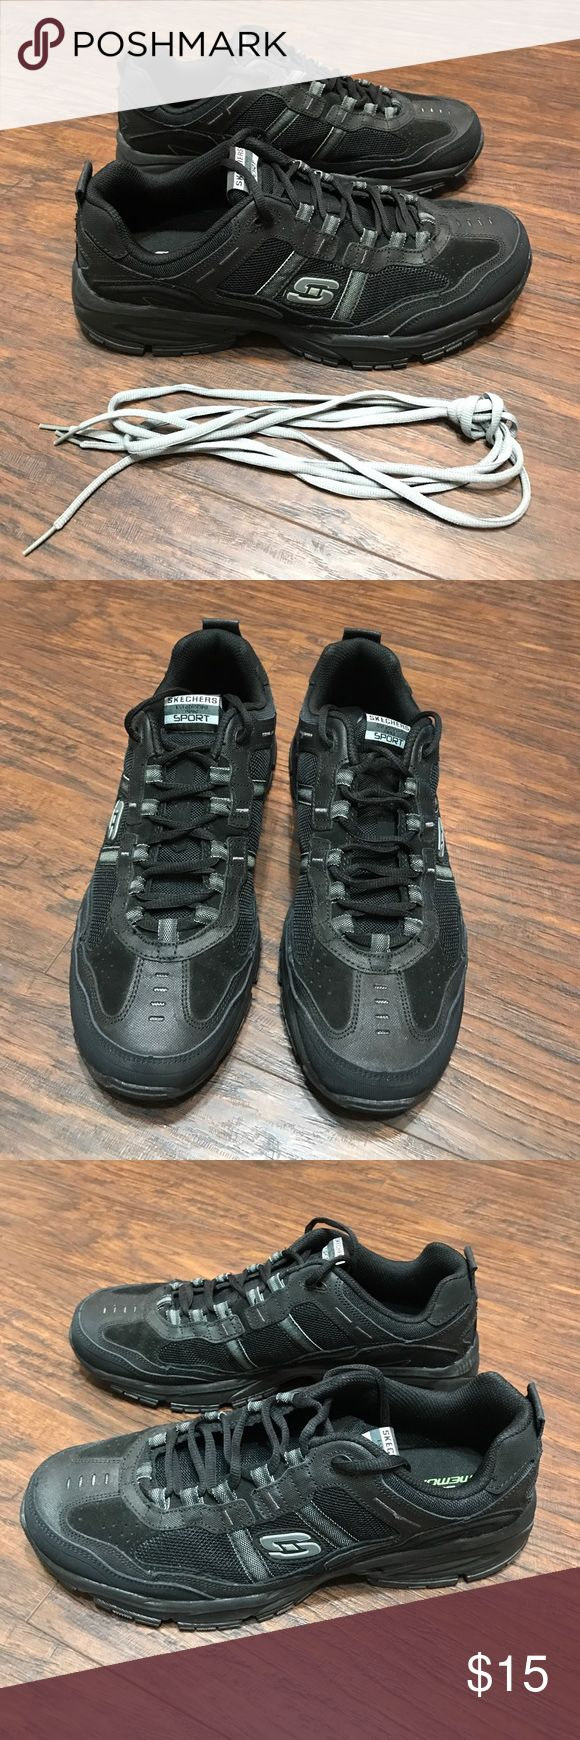 Skechers men's memory foam tennis shoes sneakers Skechers men's memory foam black tennis shoes sneakers wore once has small area separated on left shoe please see last pic sold as is final listed price please no offers Skechers Shoes Sneakers